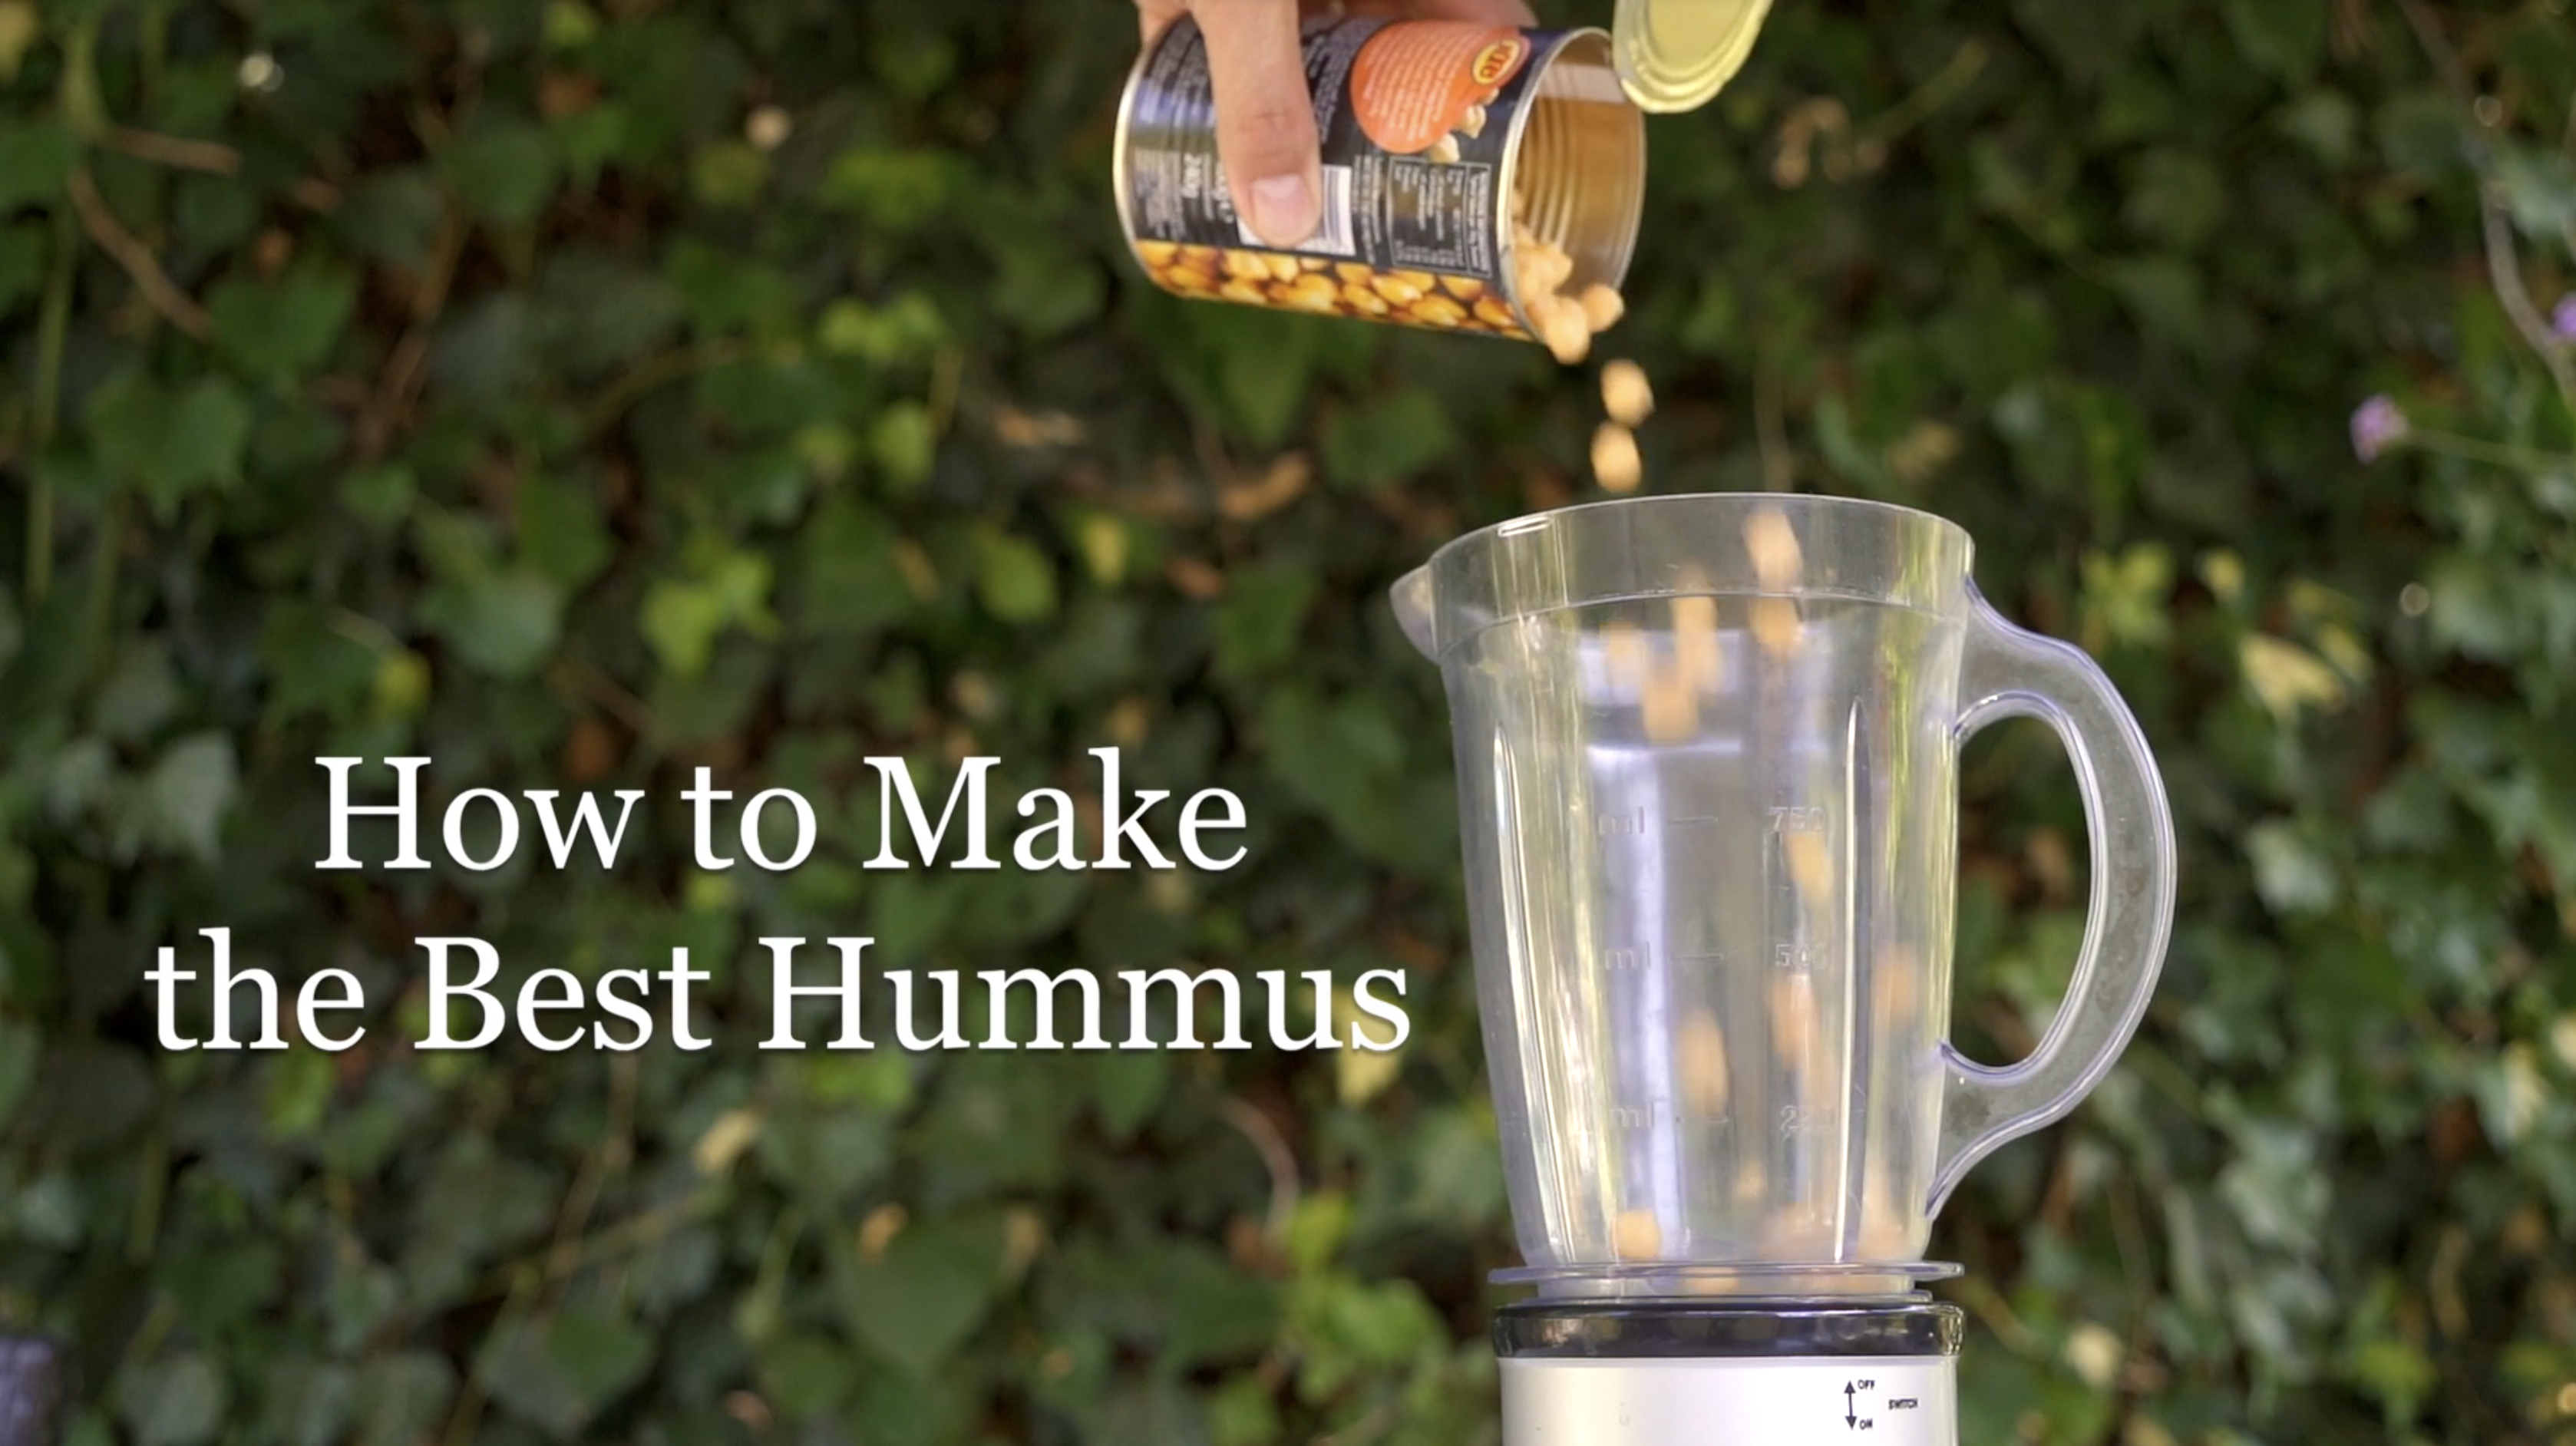 How to make the best hummus video